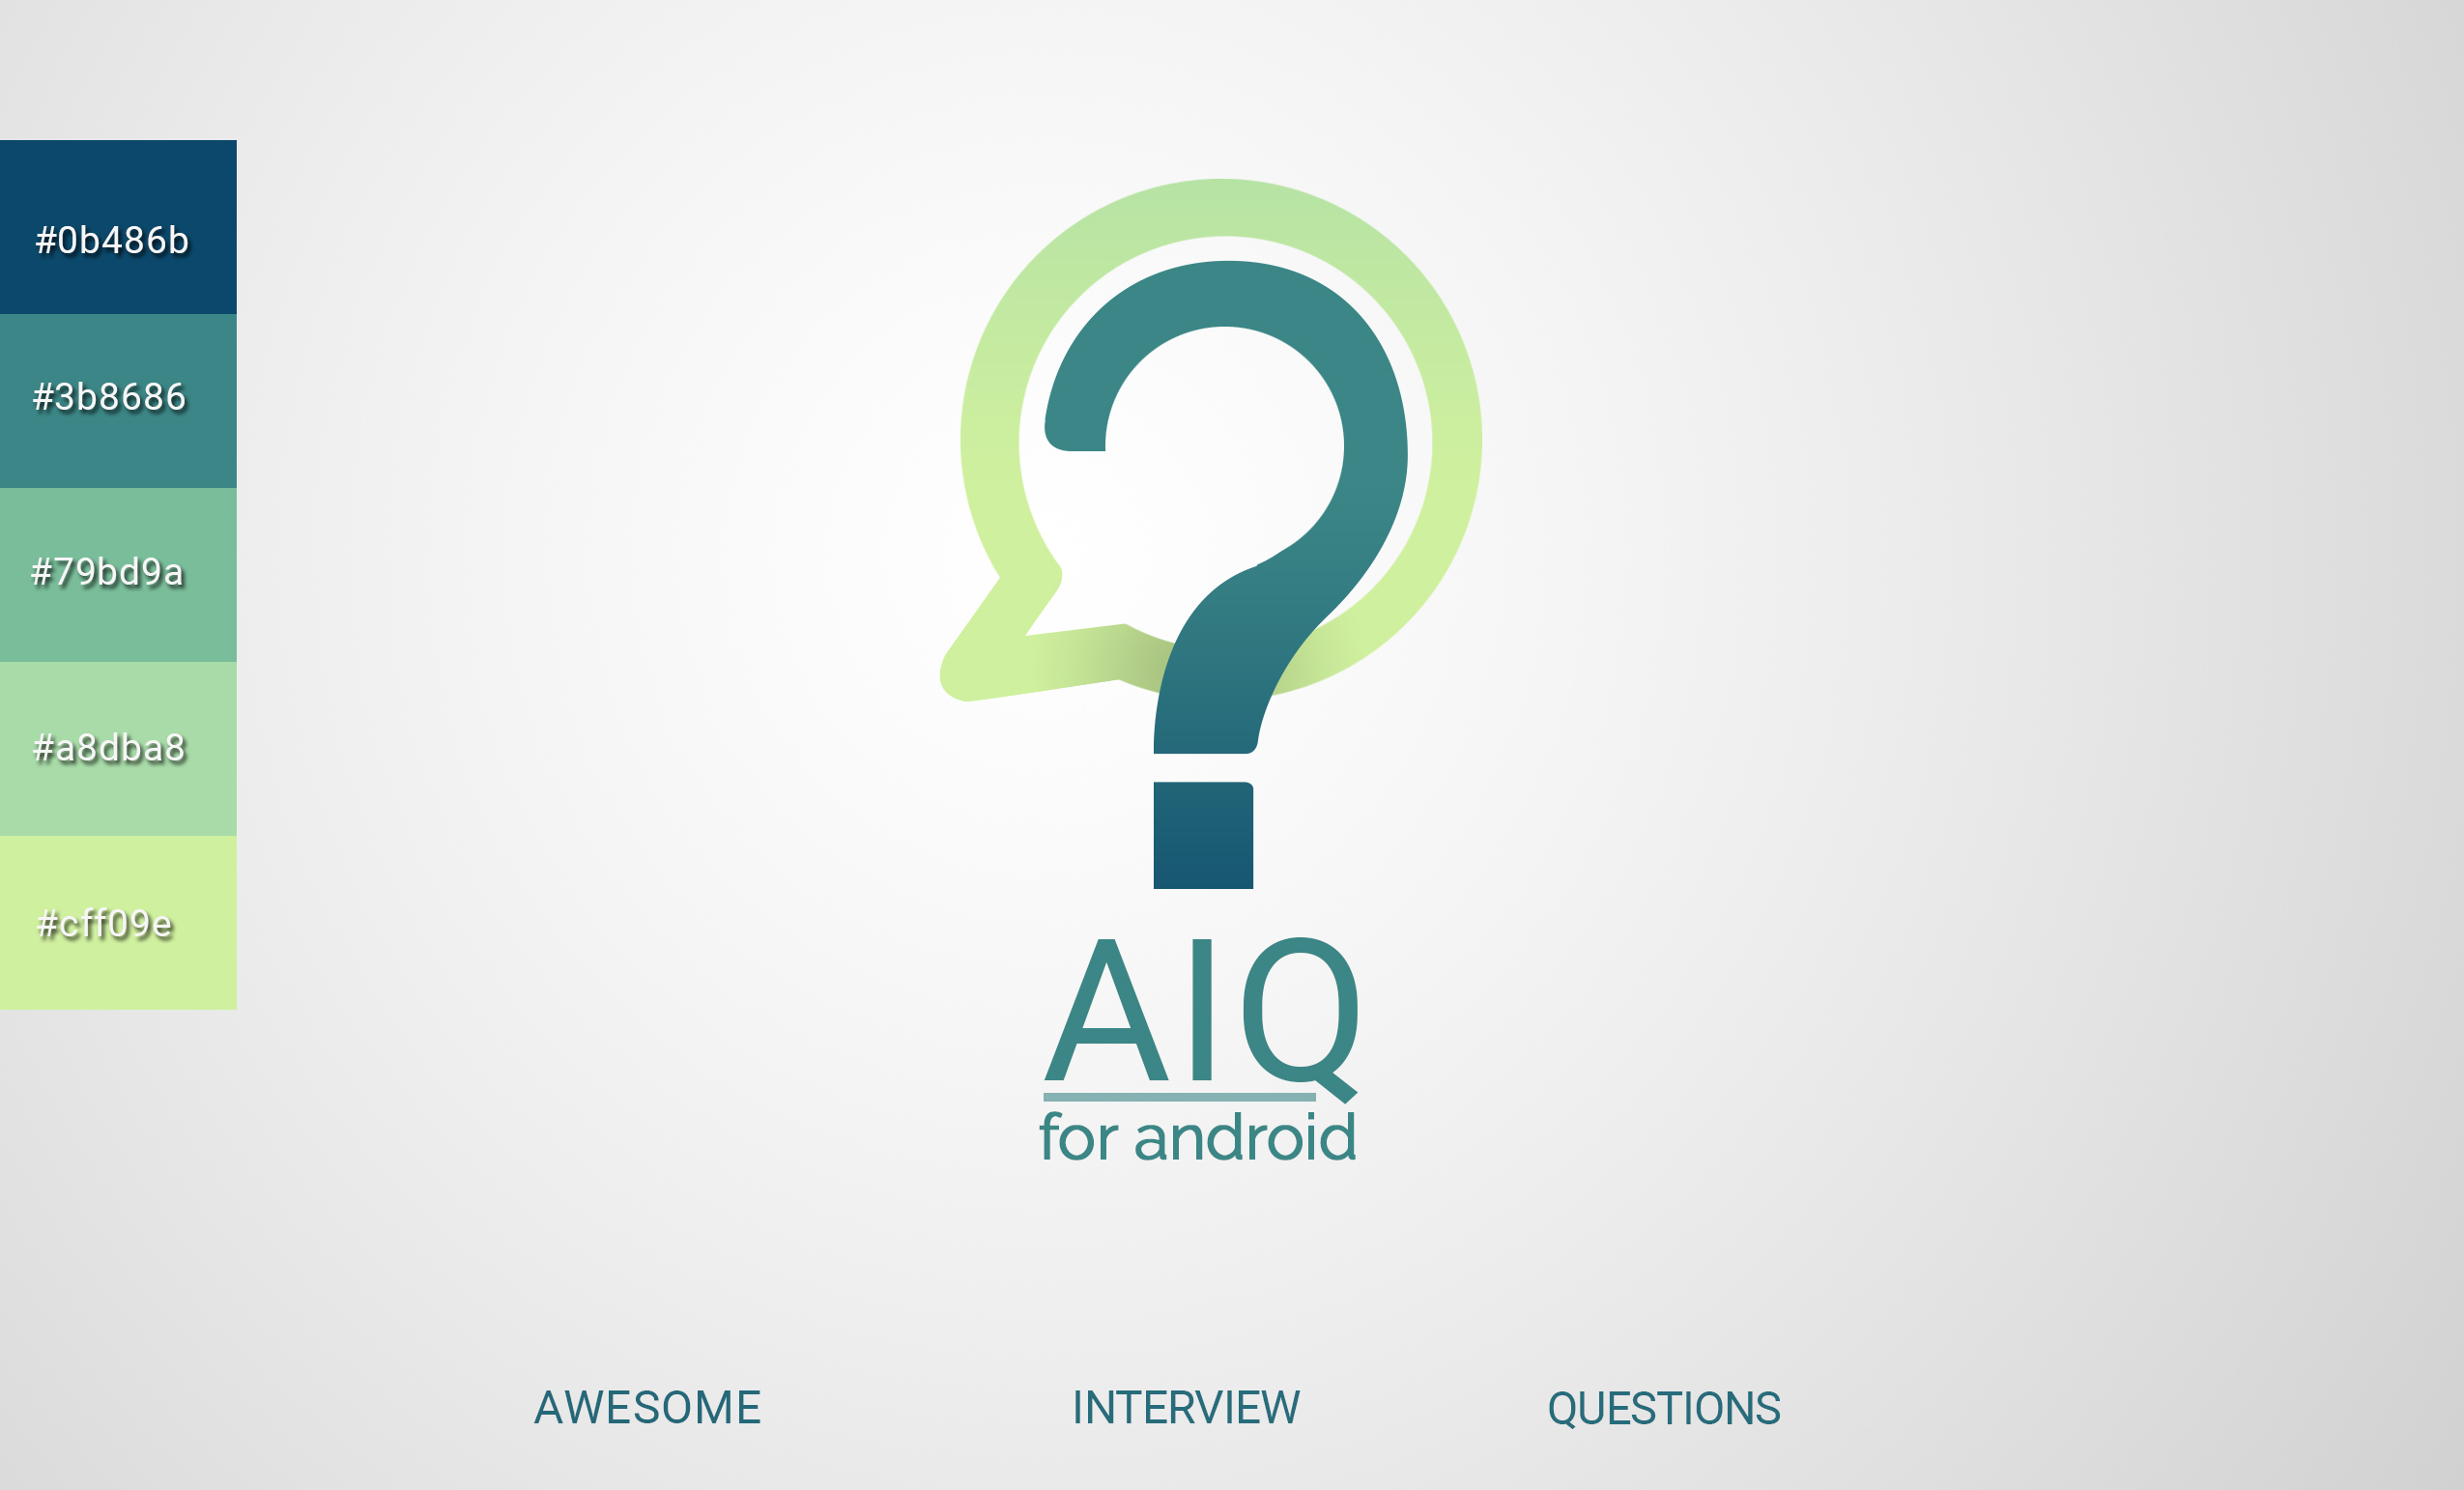 Android Interview Questions Github image upgrade · issue #4 · jsonchao/awesome-android